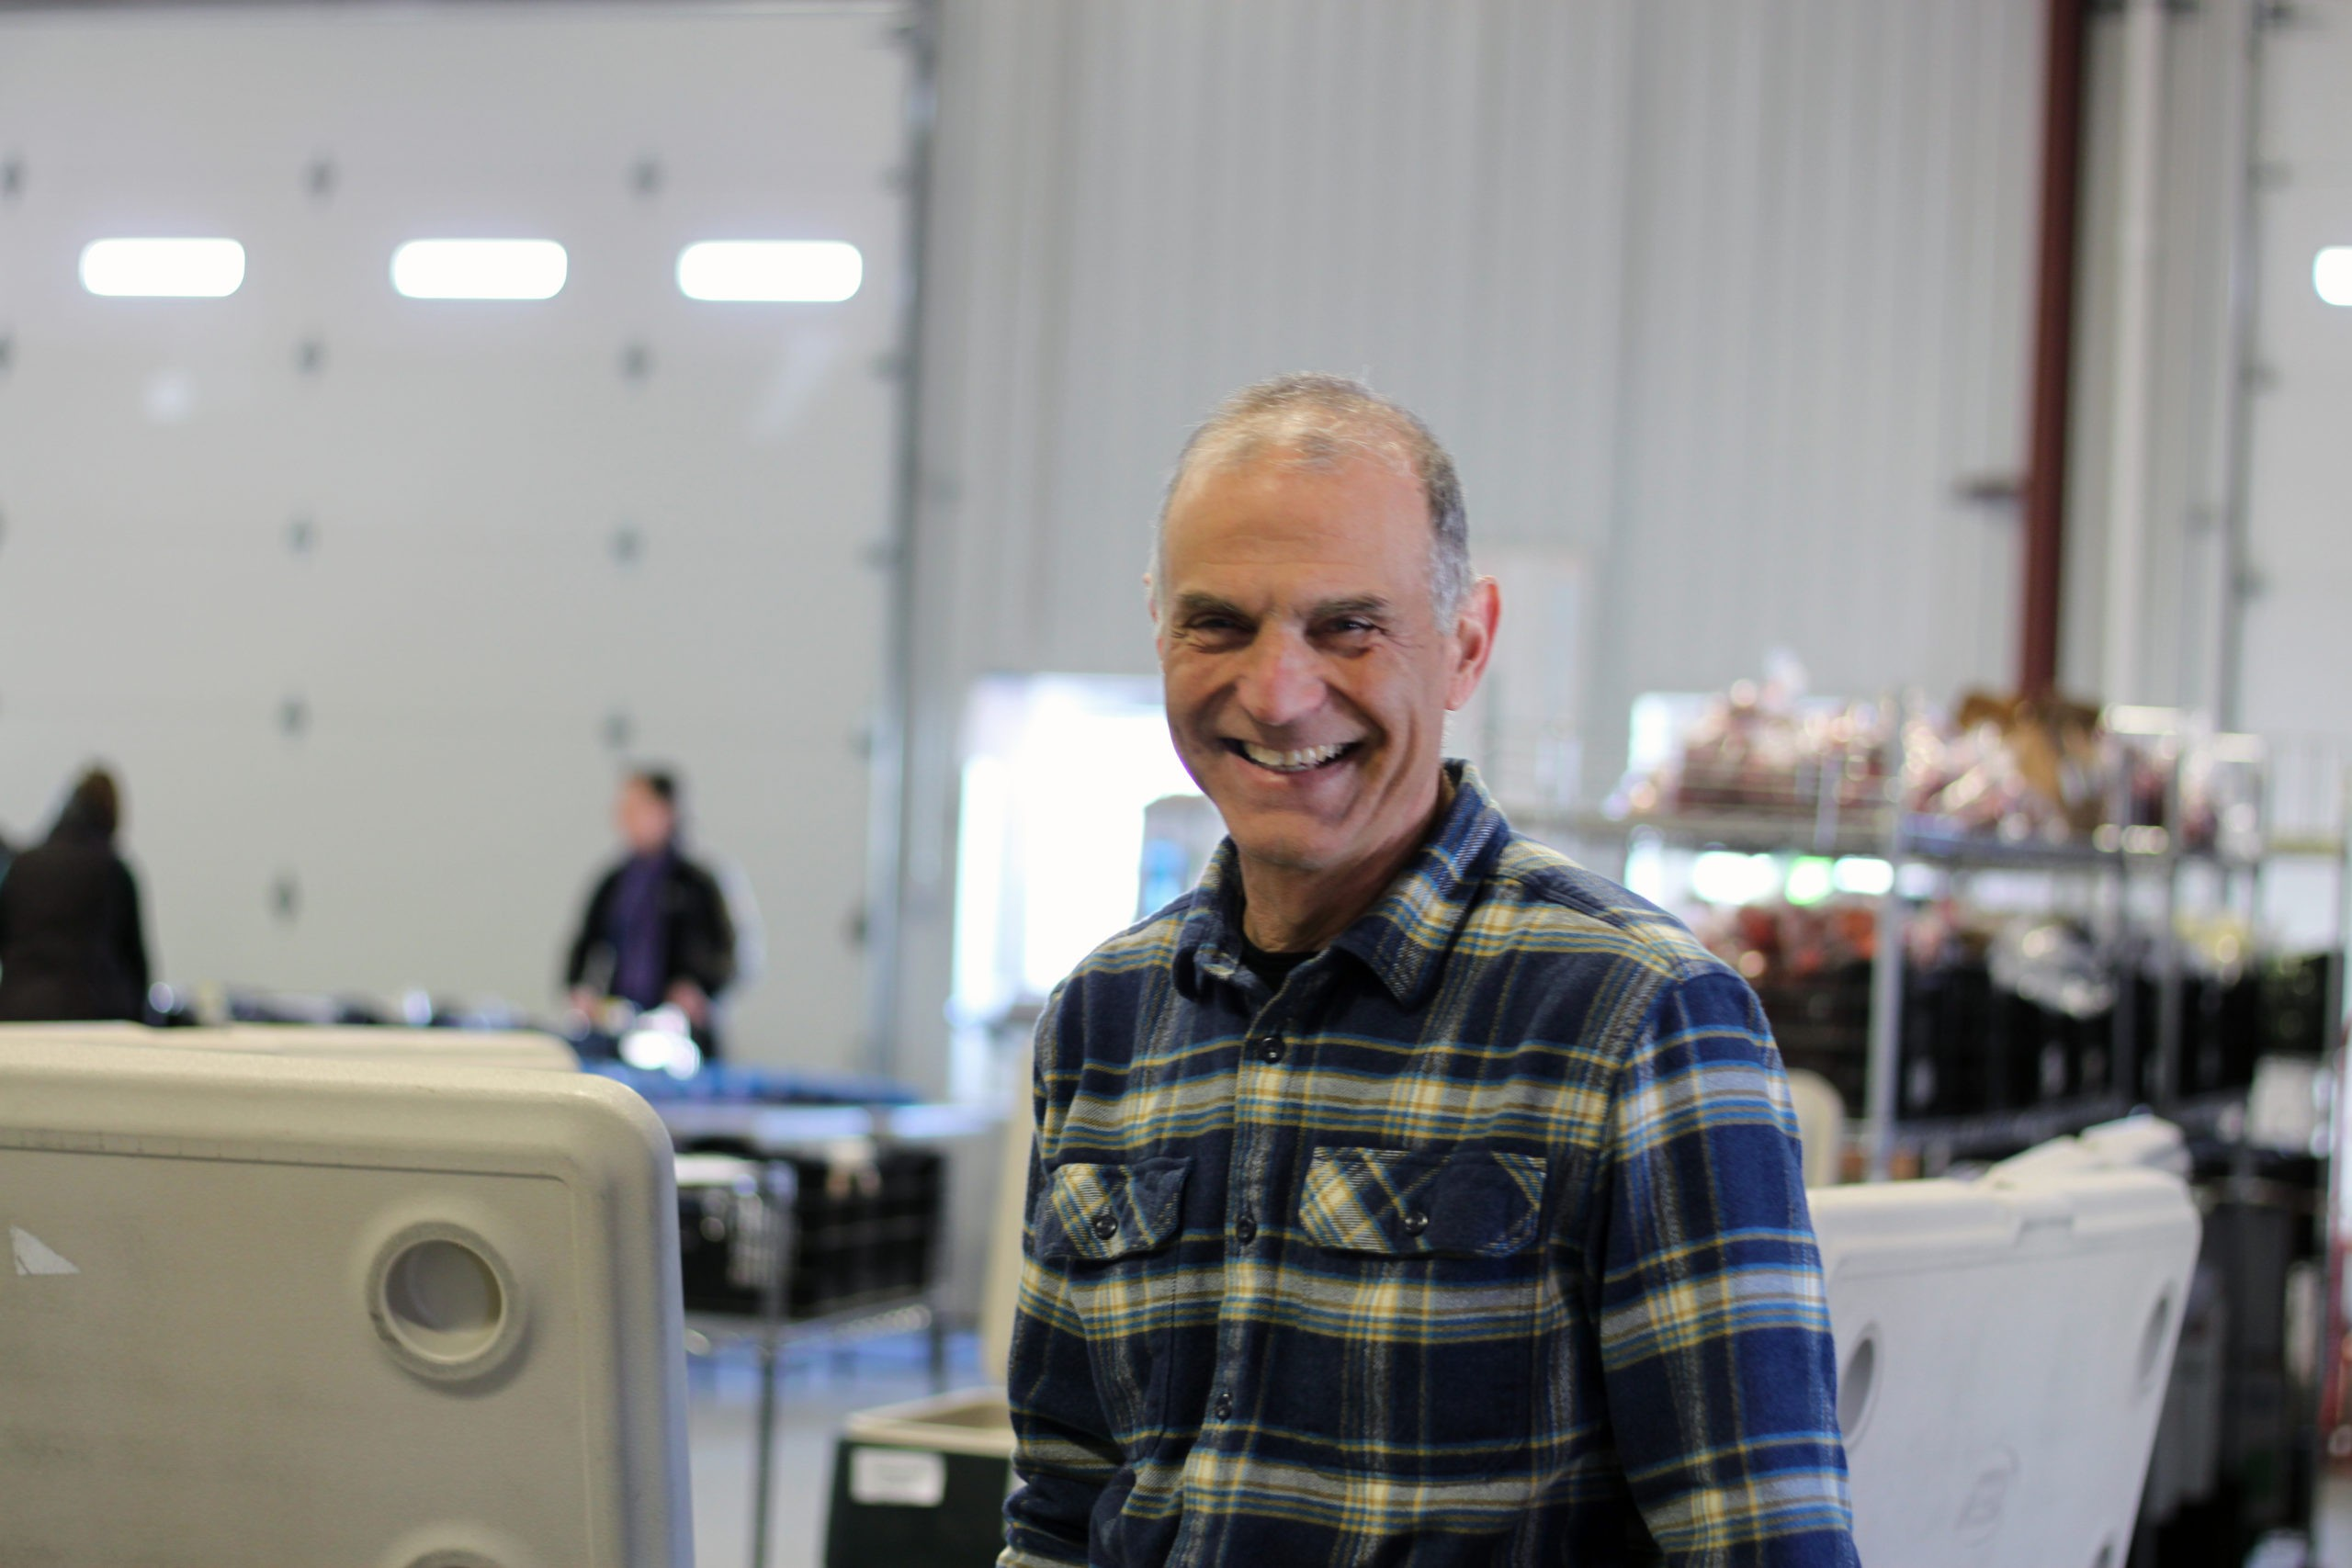 Greg Georgaklis, Founder and Owner of Farmers To You